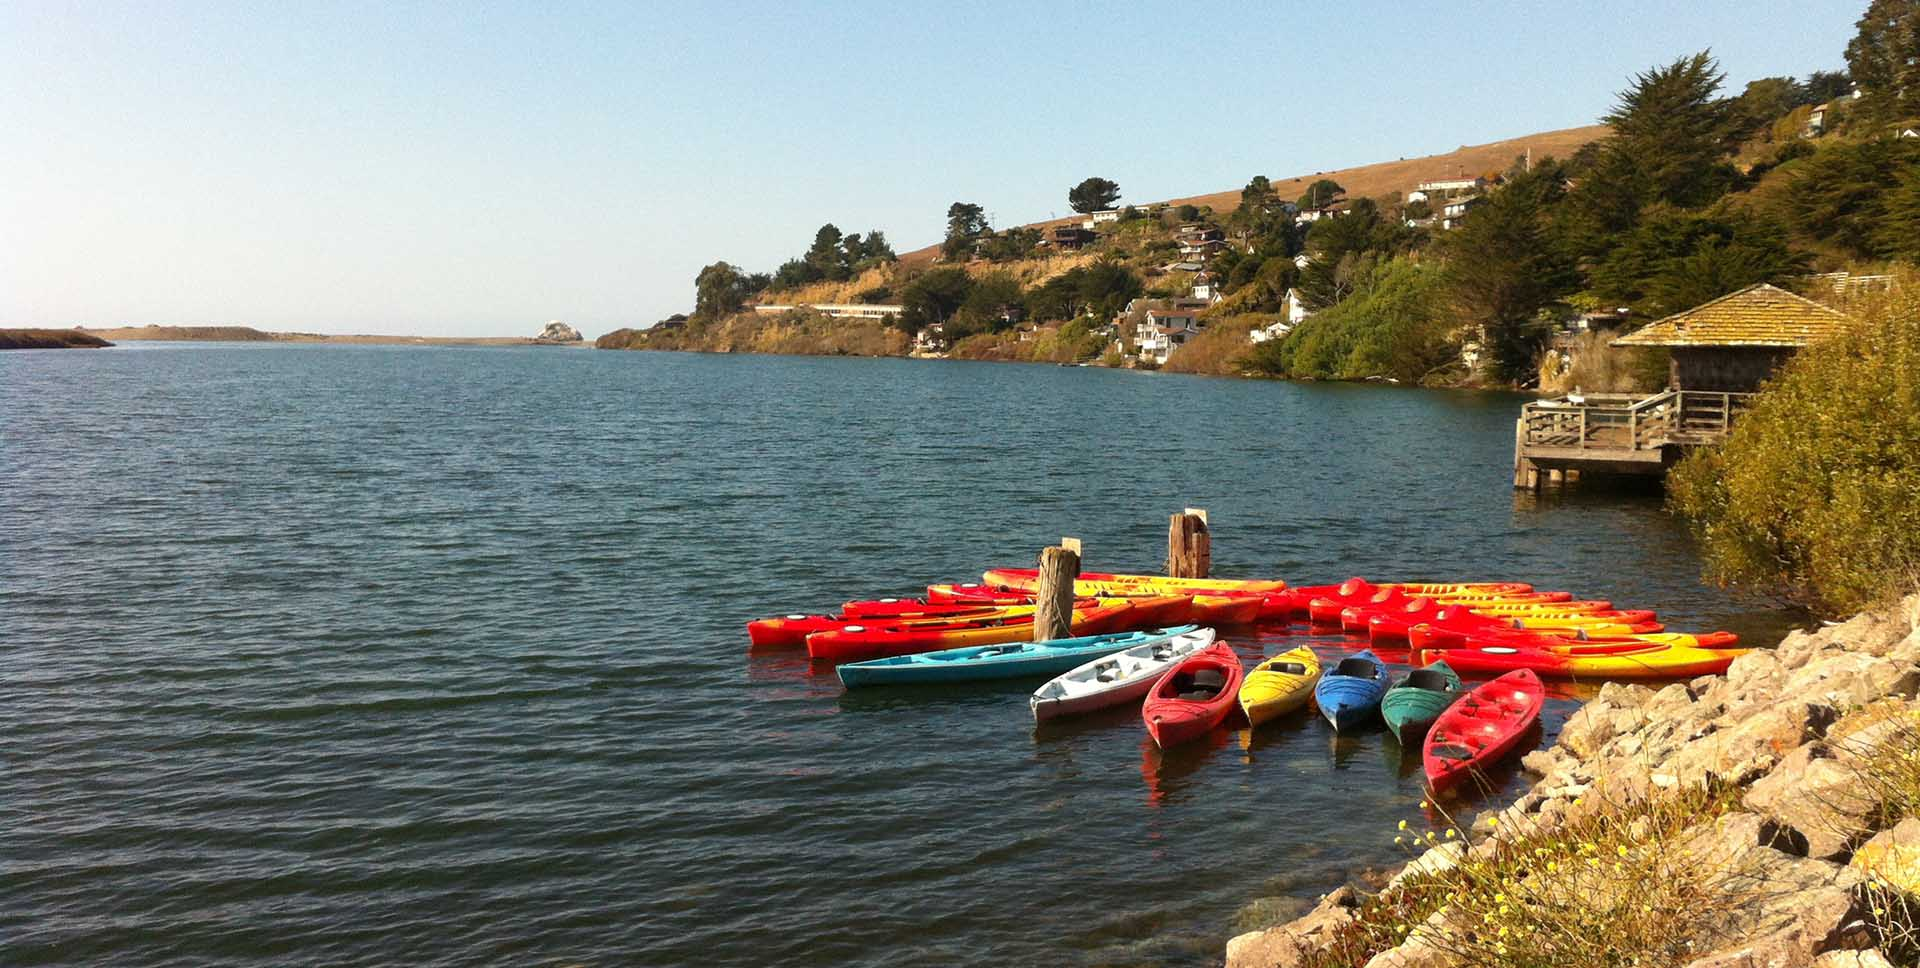 Vibrantly colored kayaks float by the sea village of Jenner, right where the mouth of the Russian River meets the ocean